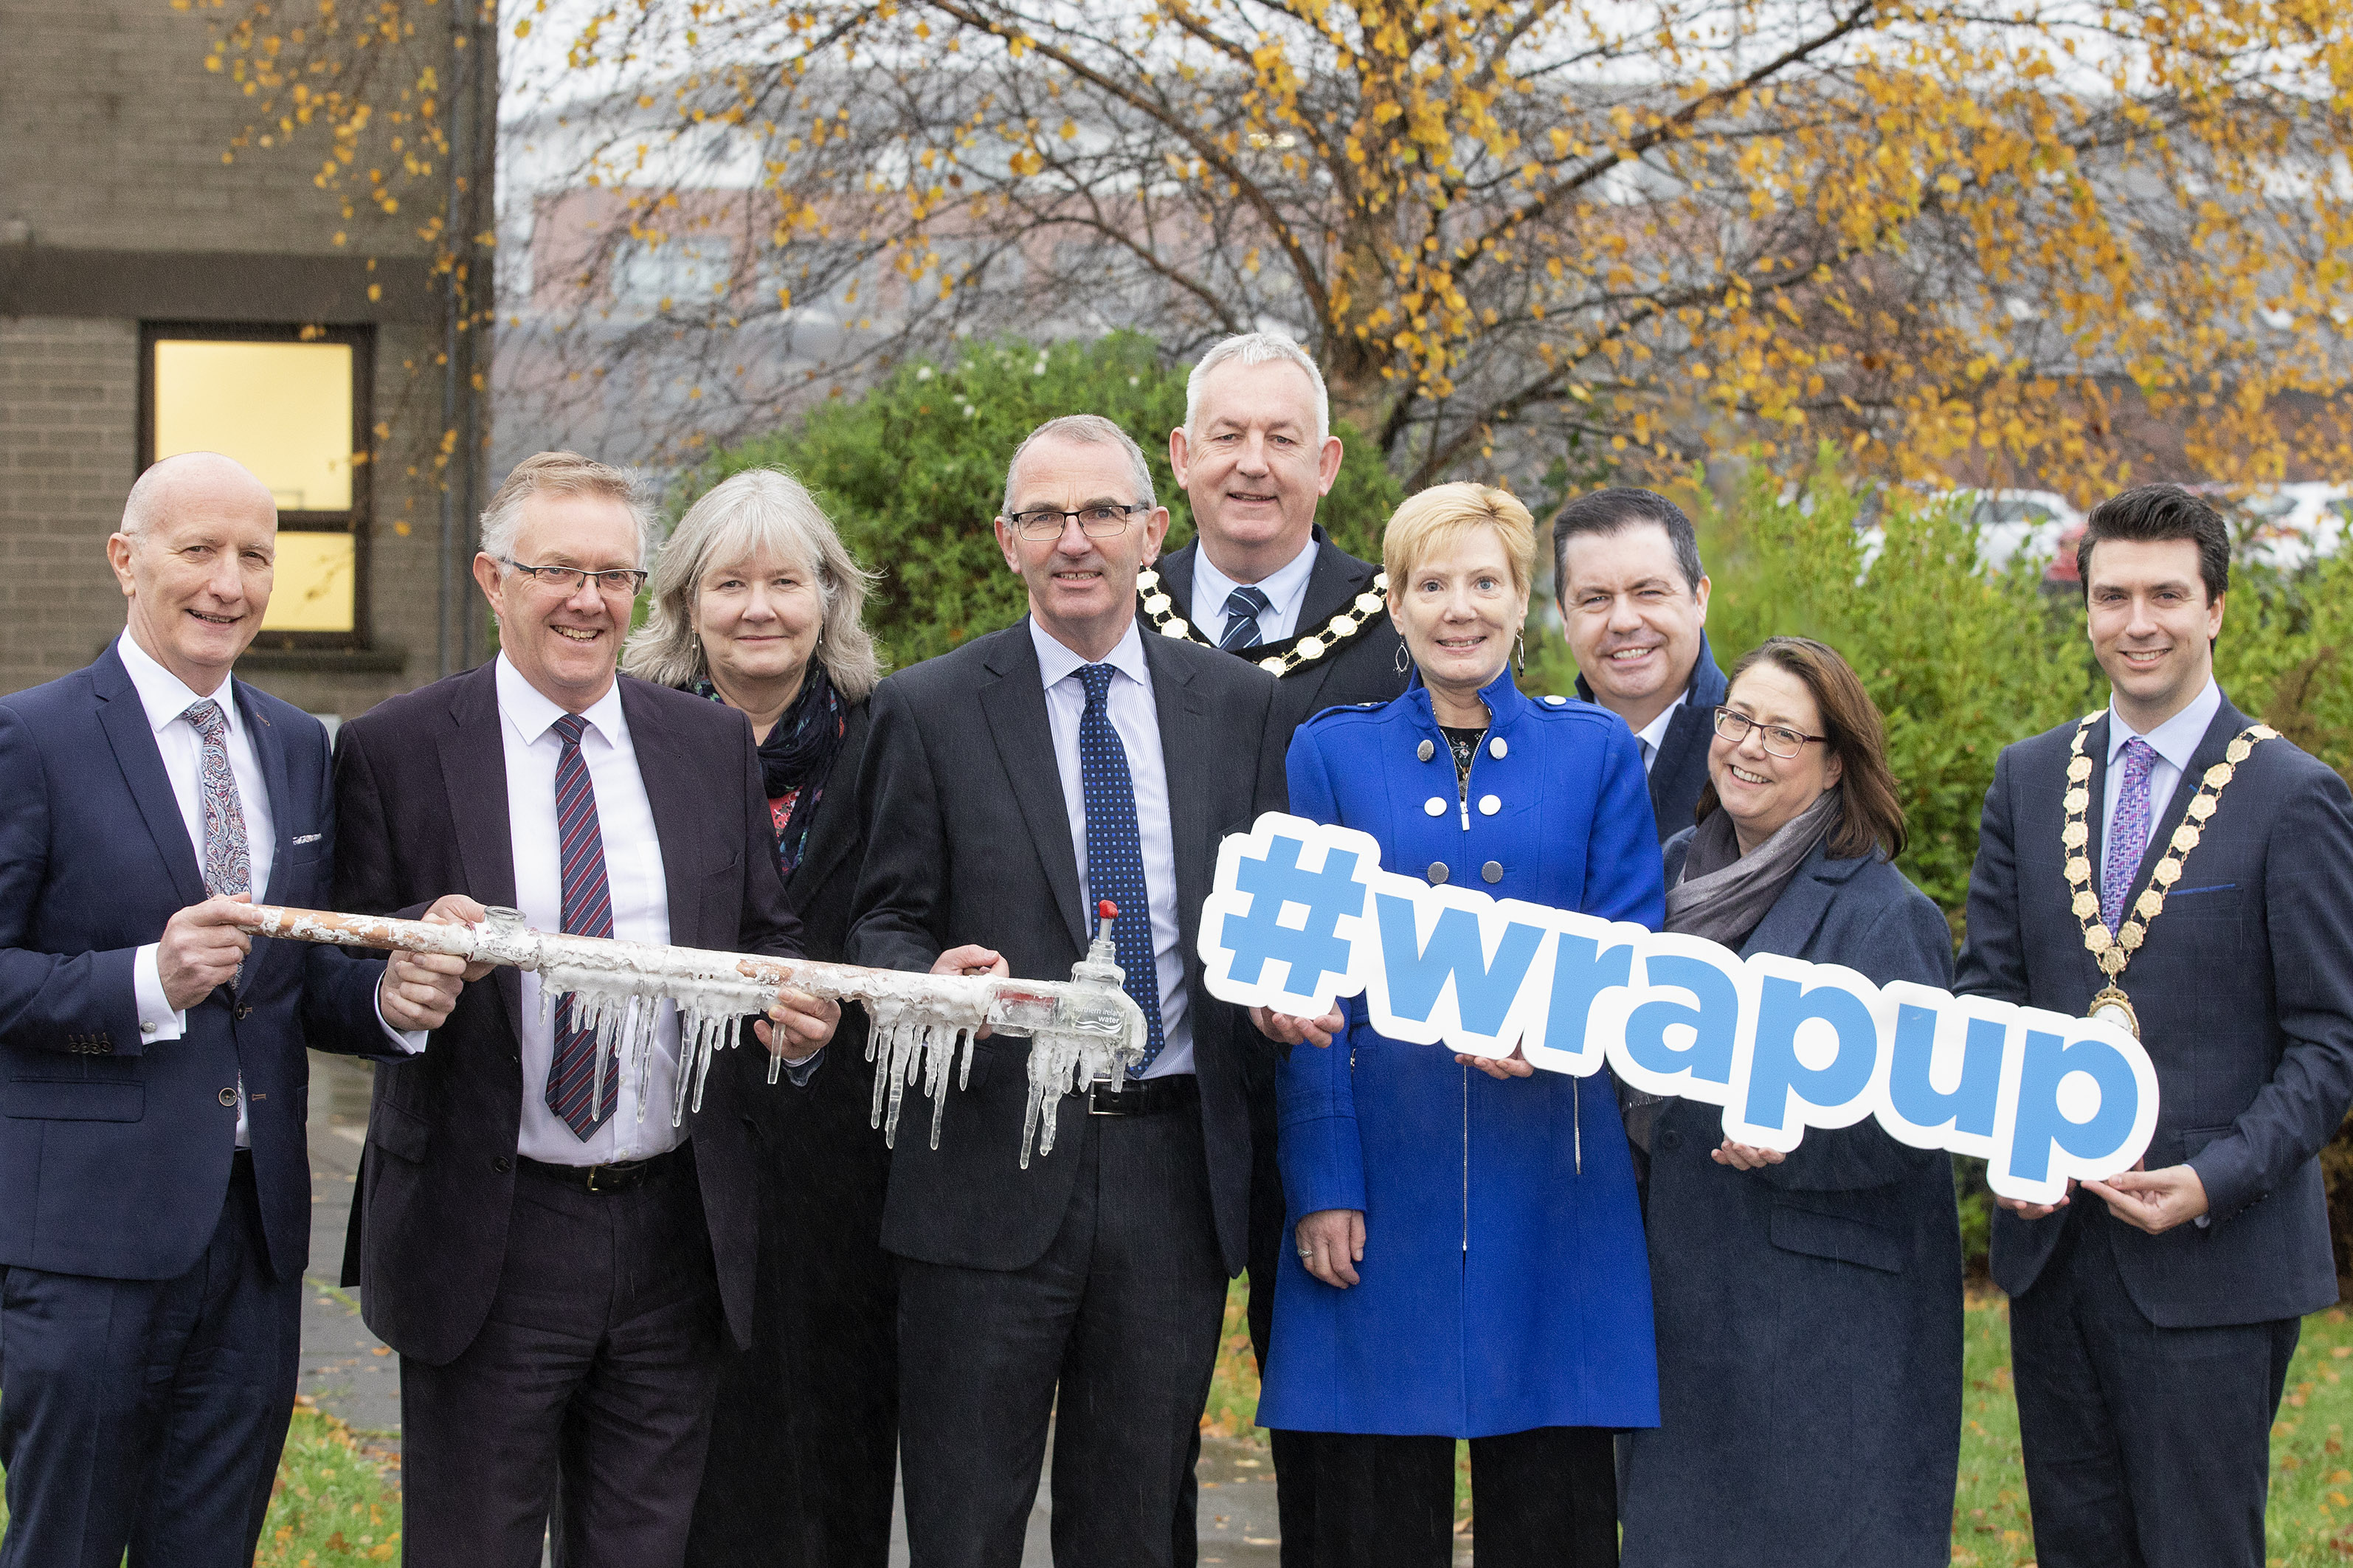 Organisations Urge Public to 'Wrap Up Their Homes' this Winter